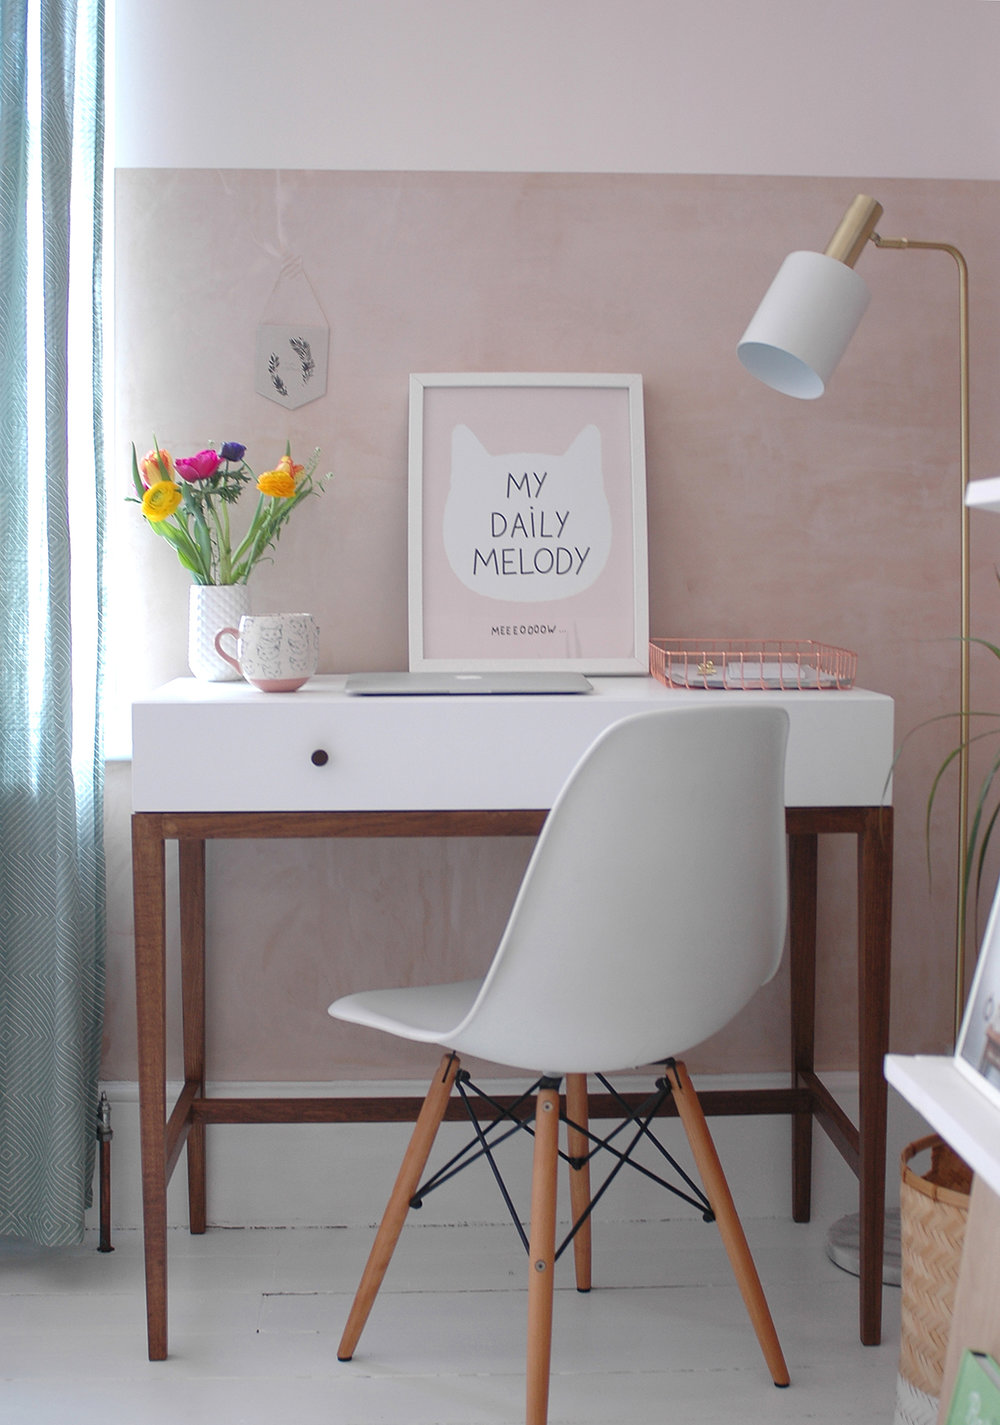 Desk: Habitat / Chair: Voga / Floor lamp: Barker and Stonehouse / My Daily Melody print: Audrey Jeanne